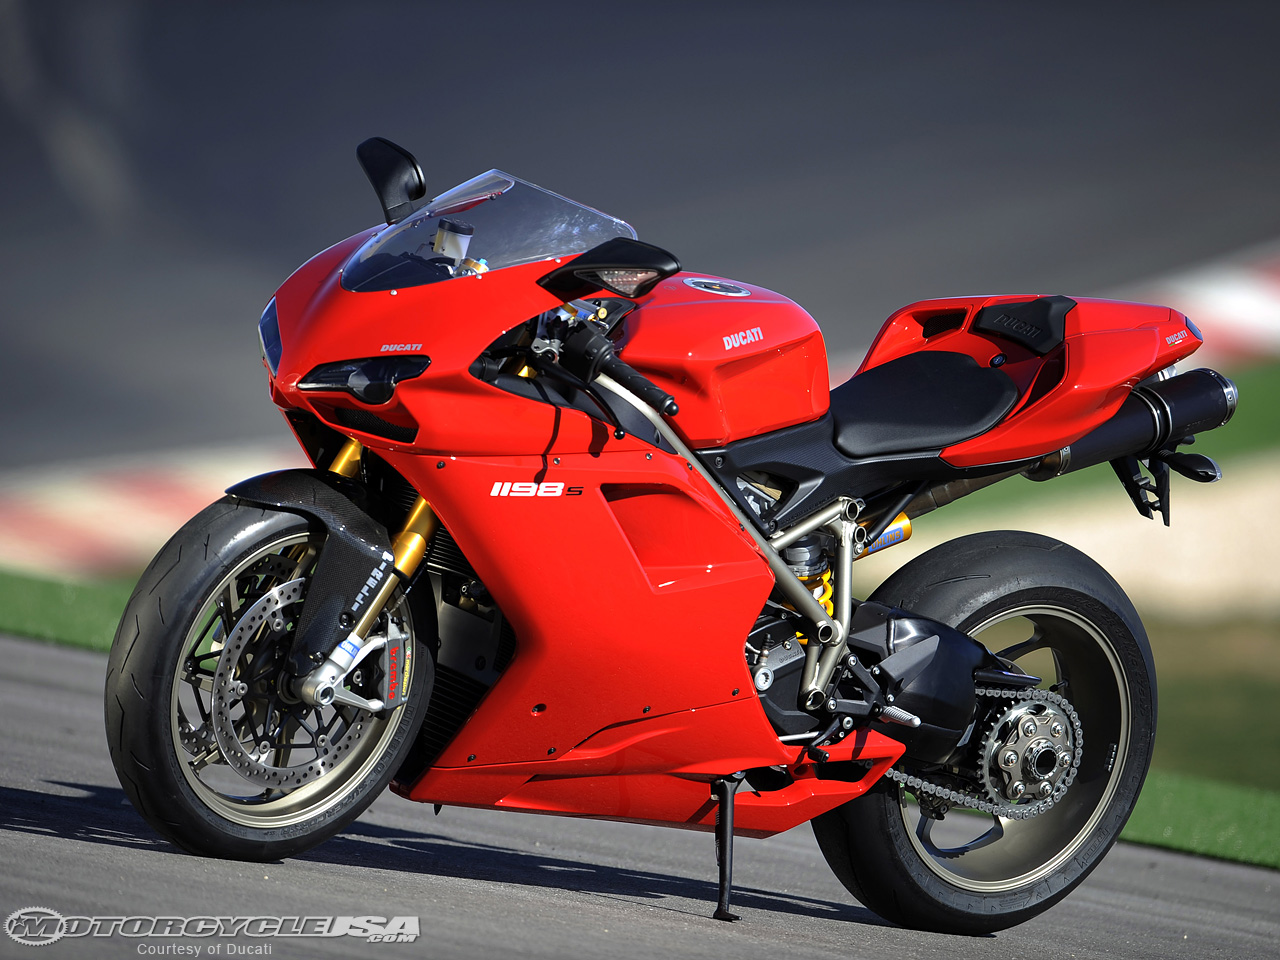 Ducati Superbike 1198 2010 wallpapers #13046